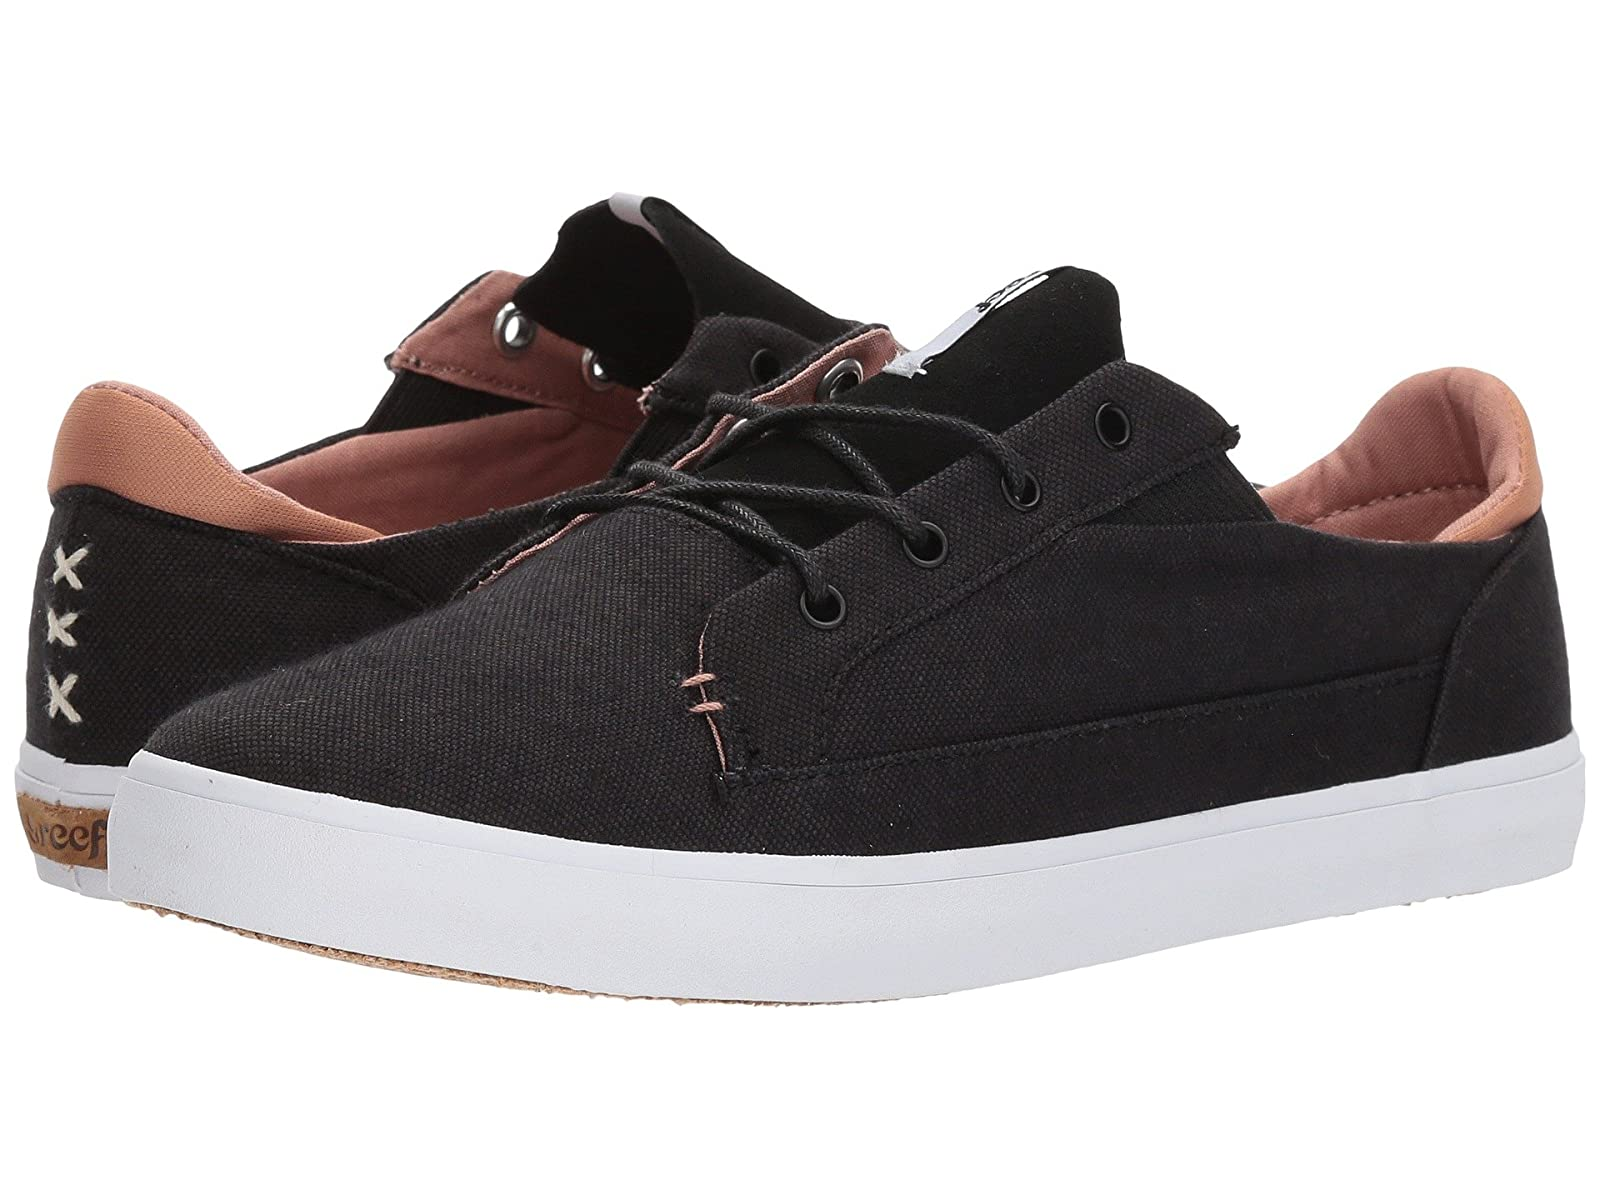 Reef IrisAtmospheric grades have affordable shoes